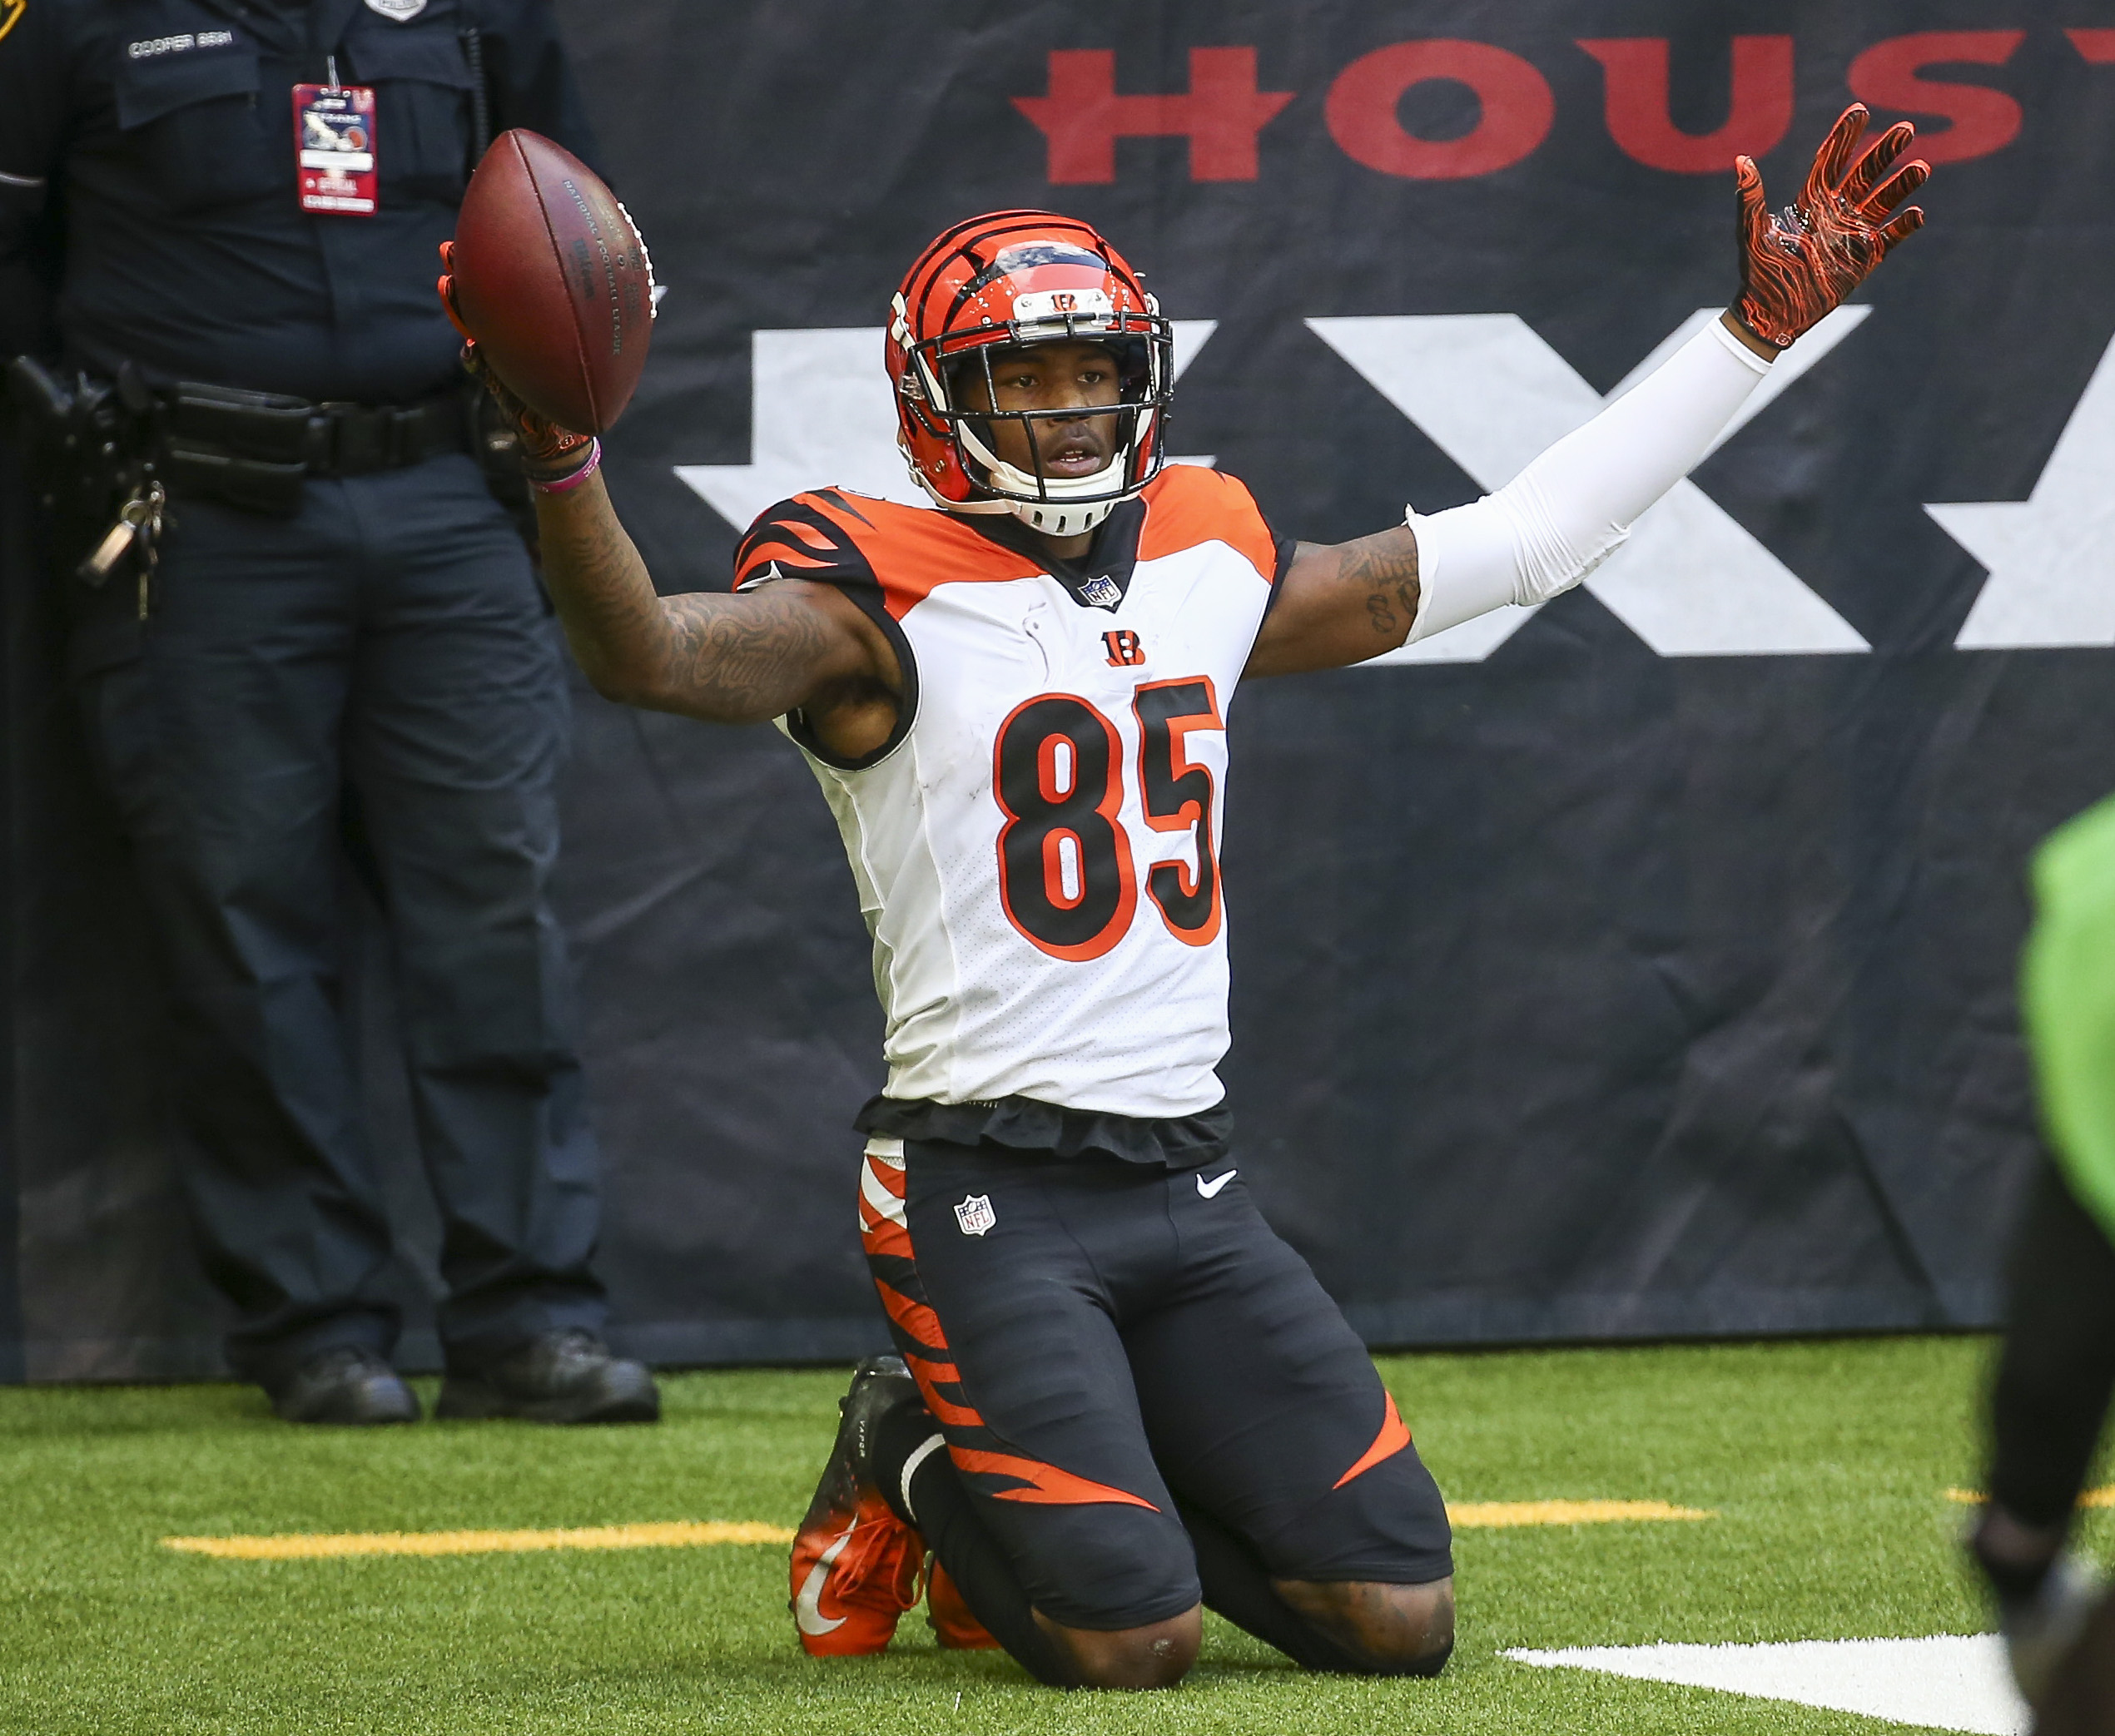 Cincinnati Bengals wide receiver Tee Higgins (85) reacts after making a reception for a touchdown against the Houston Texans during the third quarter at NRG Stadium.